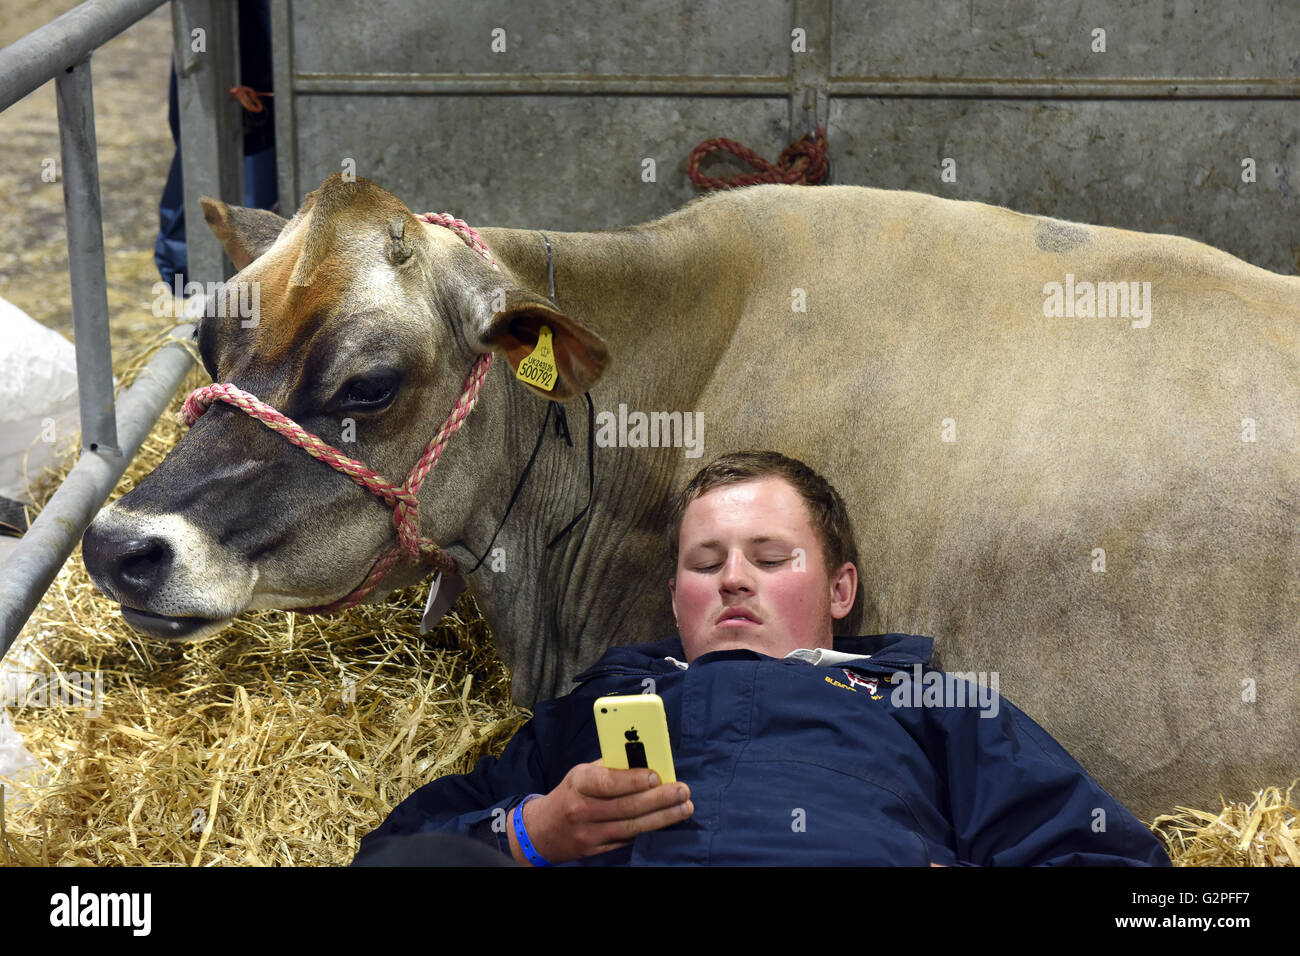 Staffordshire County Show England 1st June 2016. It's a hard days work for man and beast on the 1st day of Stafford - Stock Image